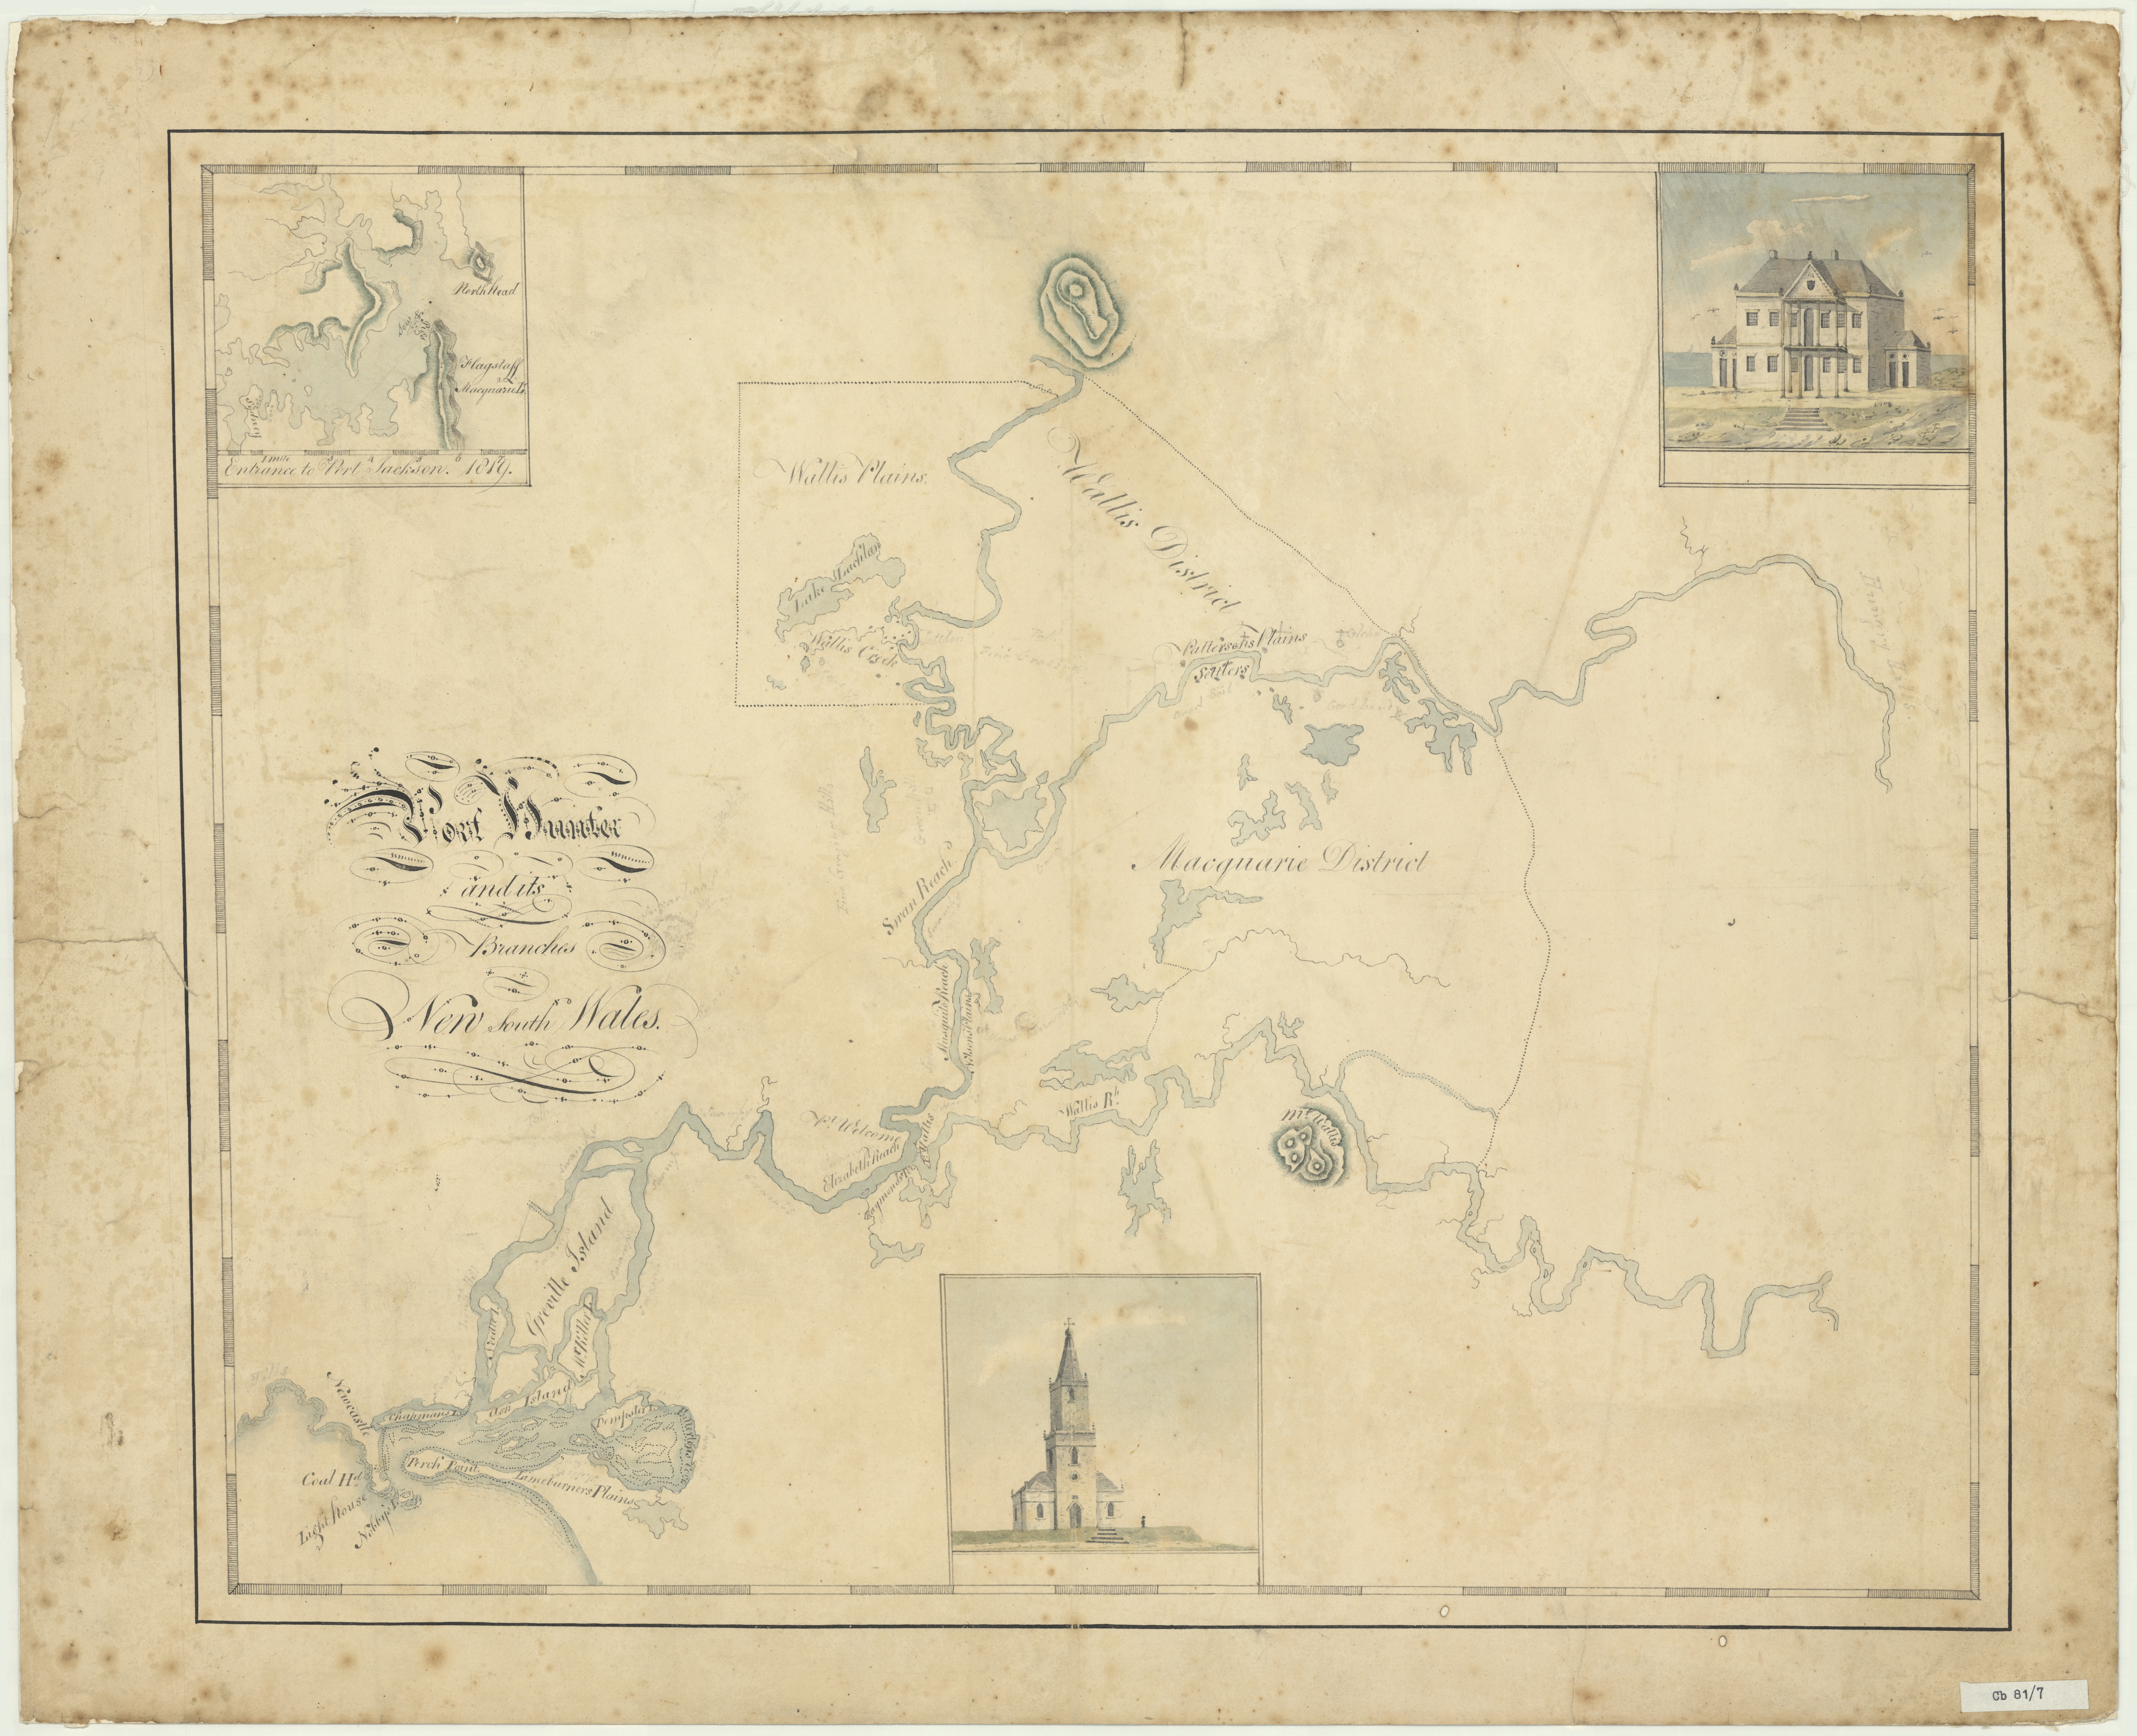 Port Hunter and its Branches, 1819. (Courtesy of the State Library of NSW)